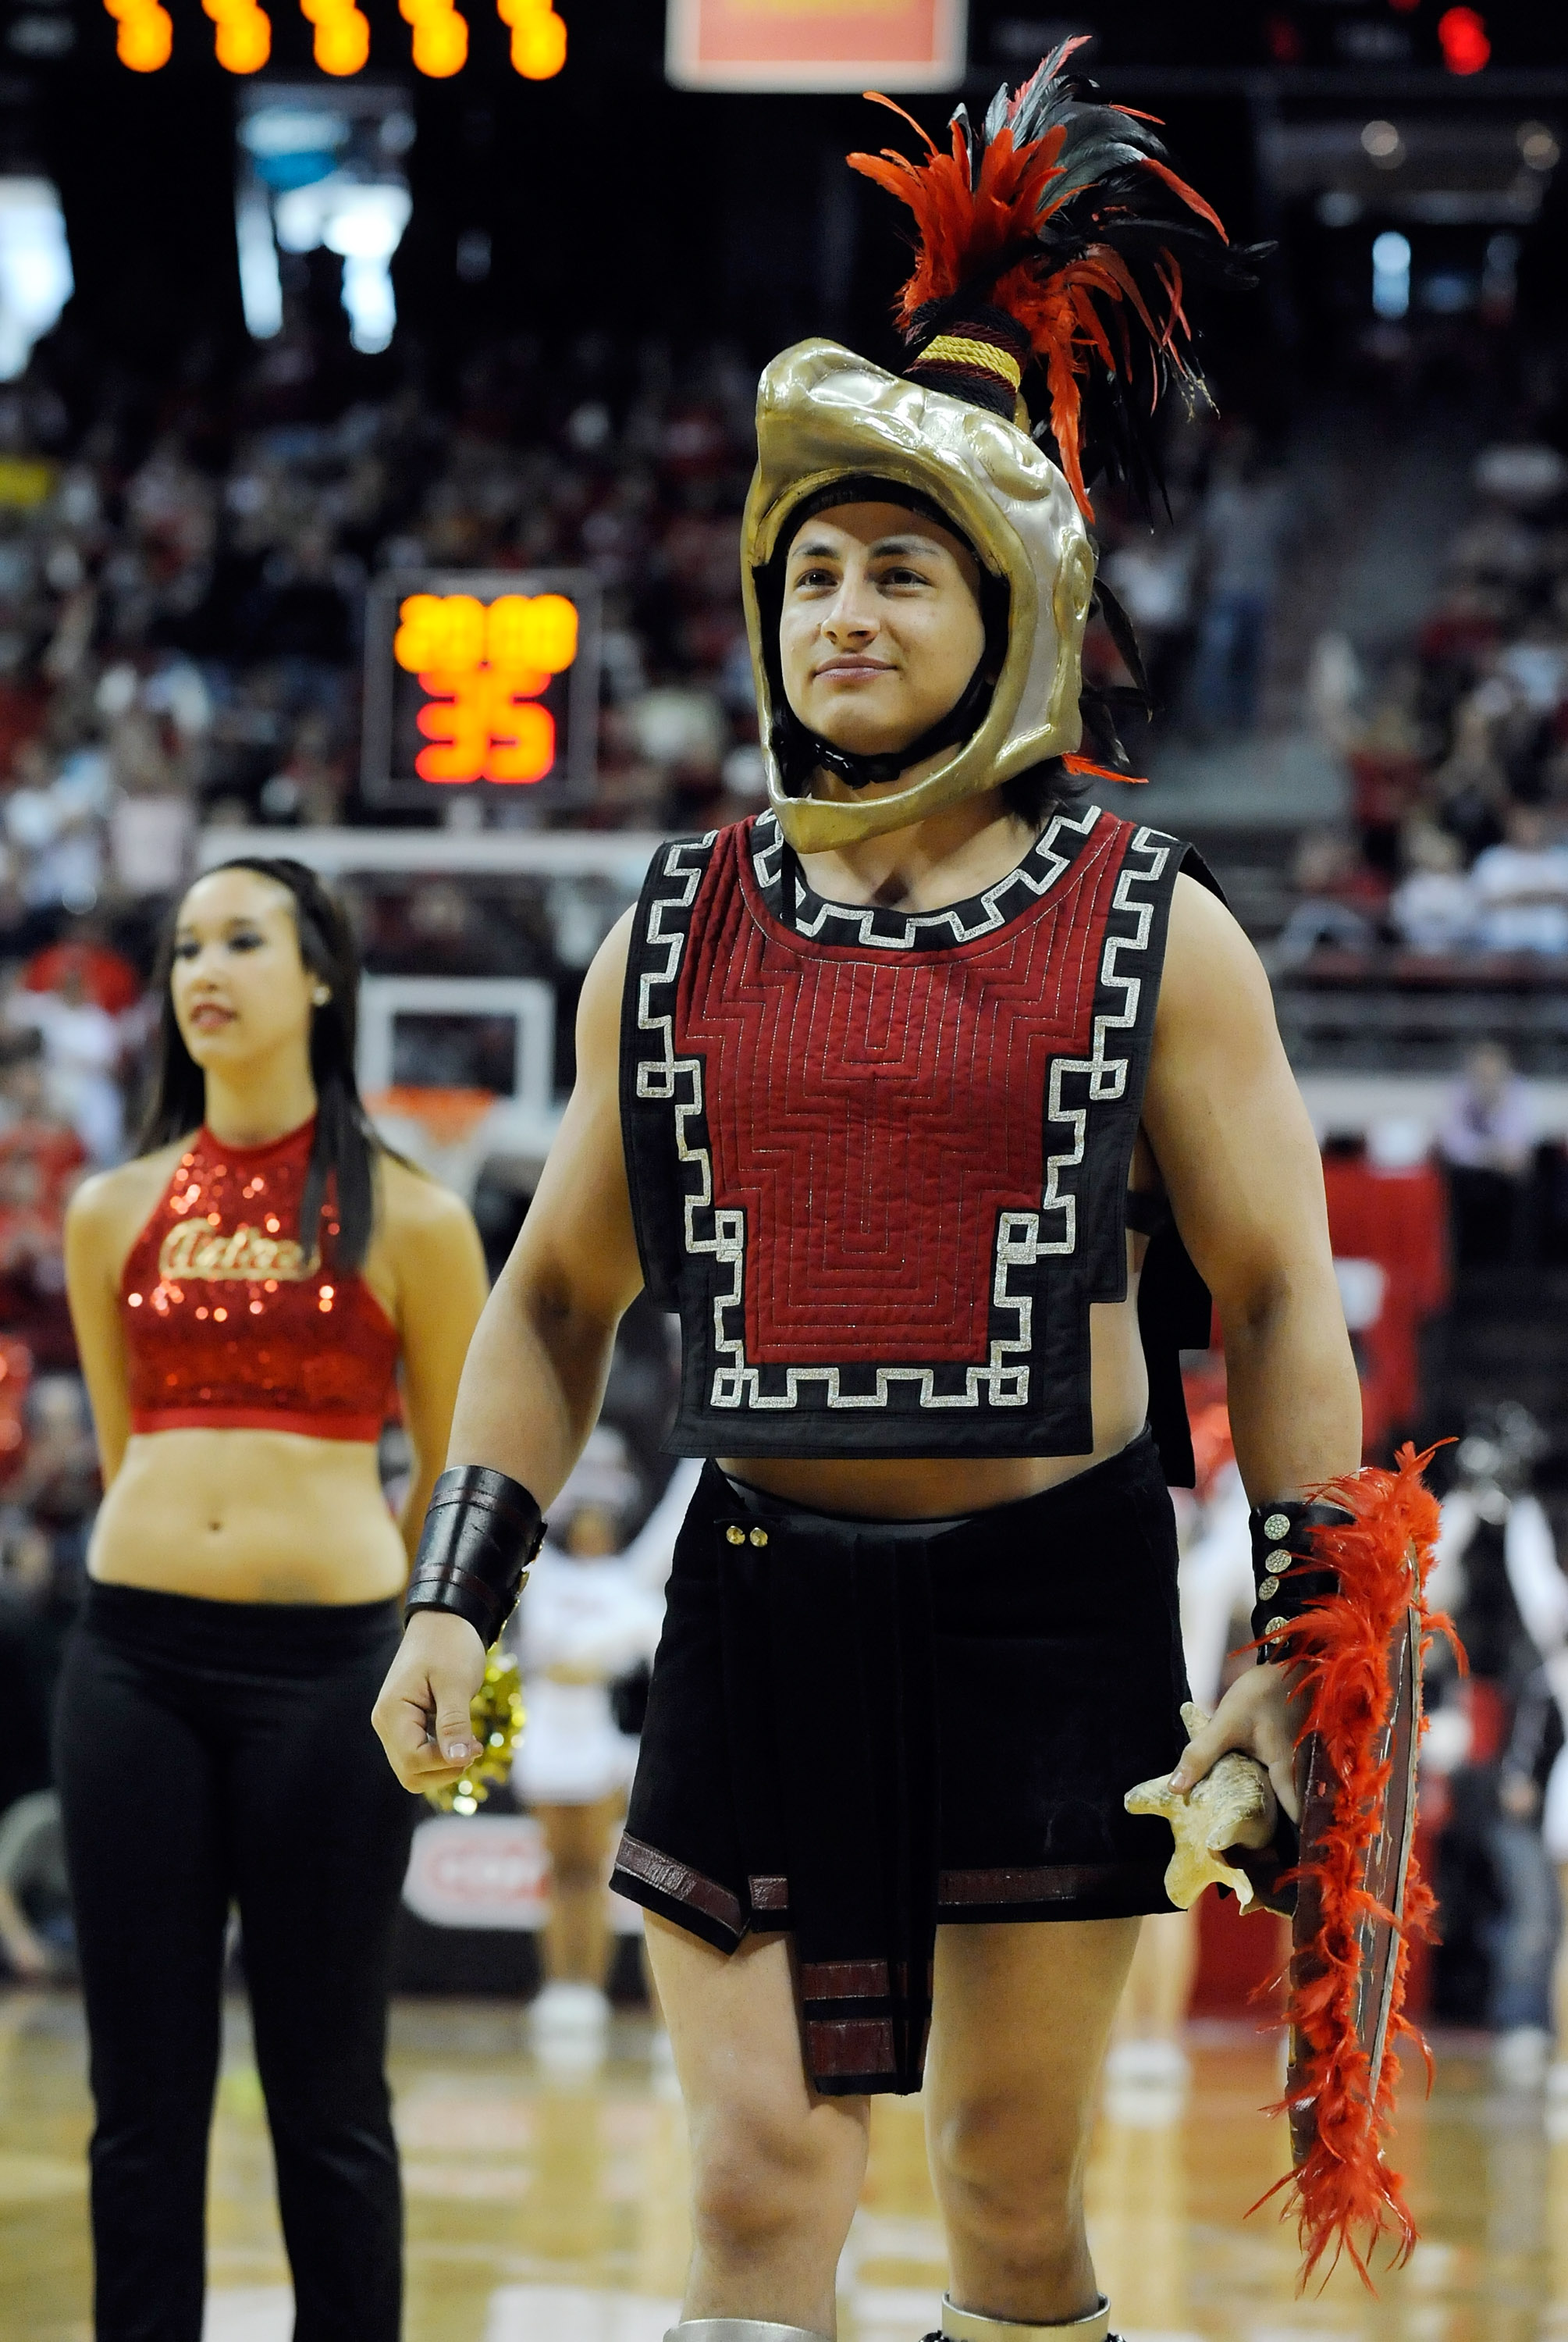 LAS VEGAS - MARCH 13:  The San Diego State Aztecs mascot Aztec Warrior appears on the court before the championship game against the UNLV Rebels at the Conoco Mountain West Conference Basketball tournament at the Thomas & Mack Center March 13, 2010 in Las